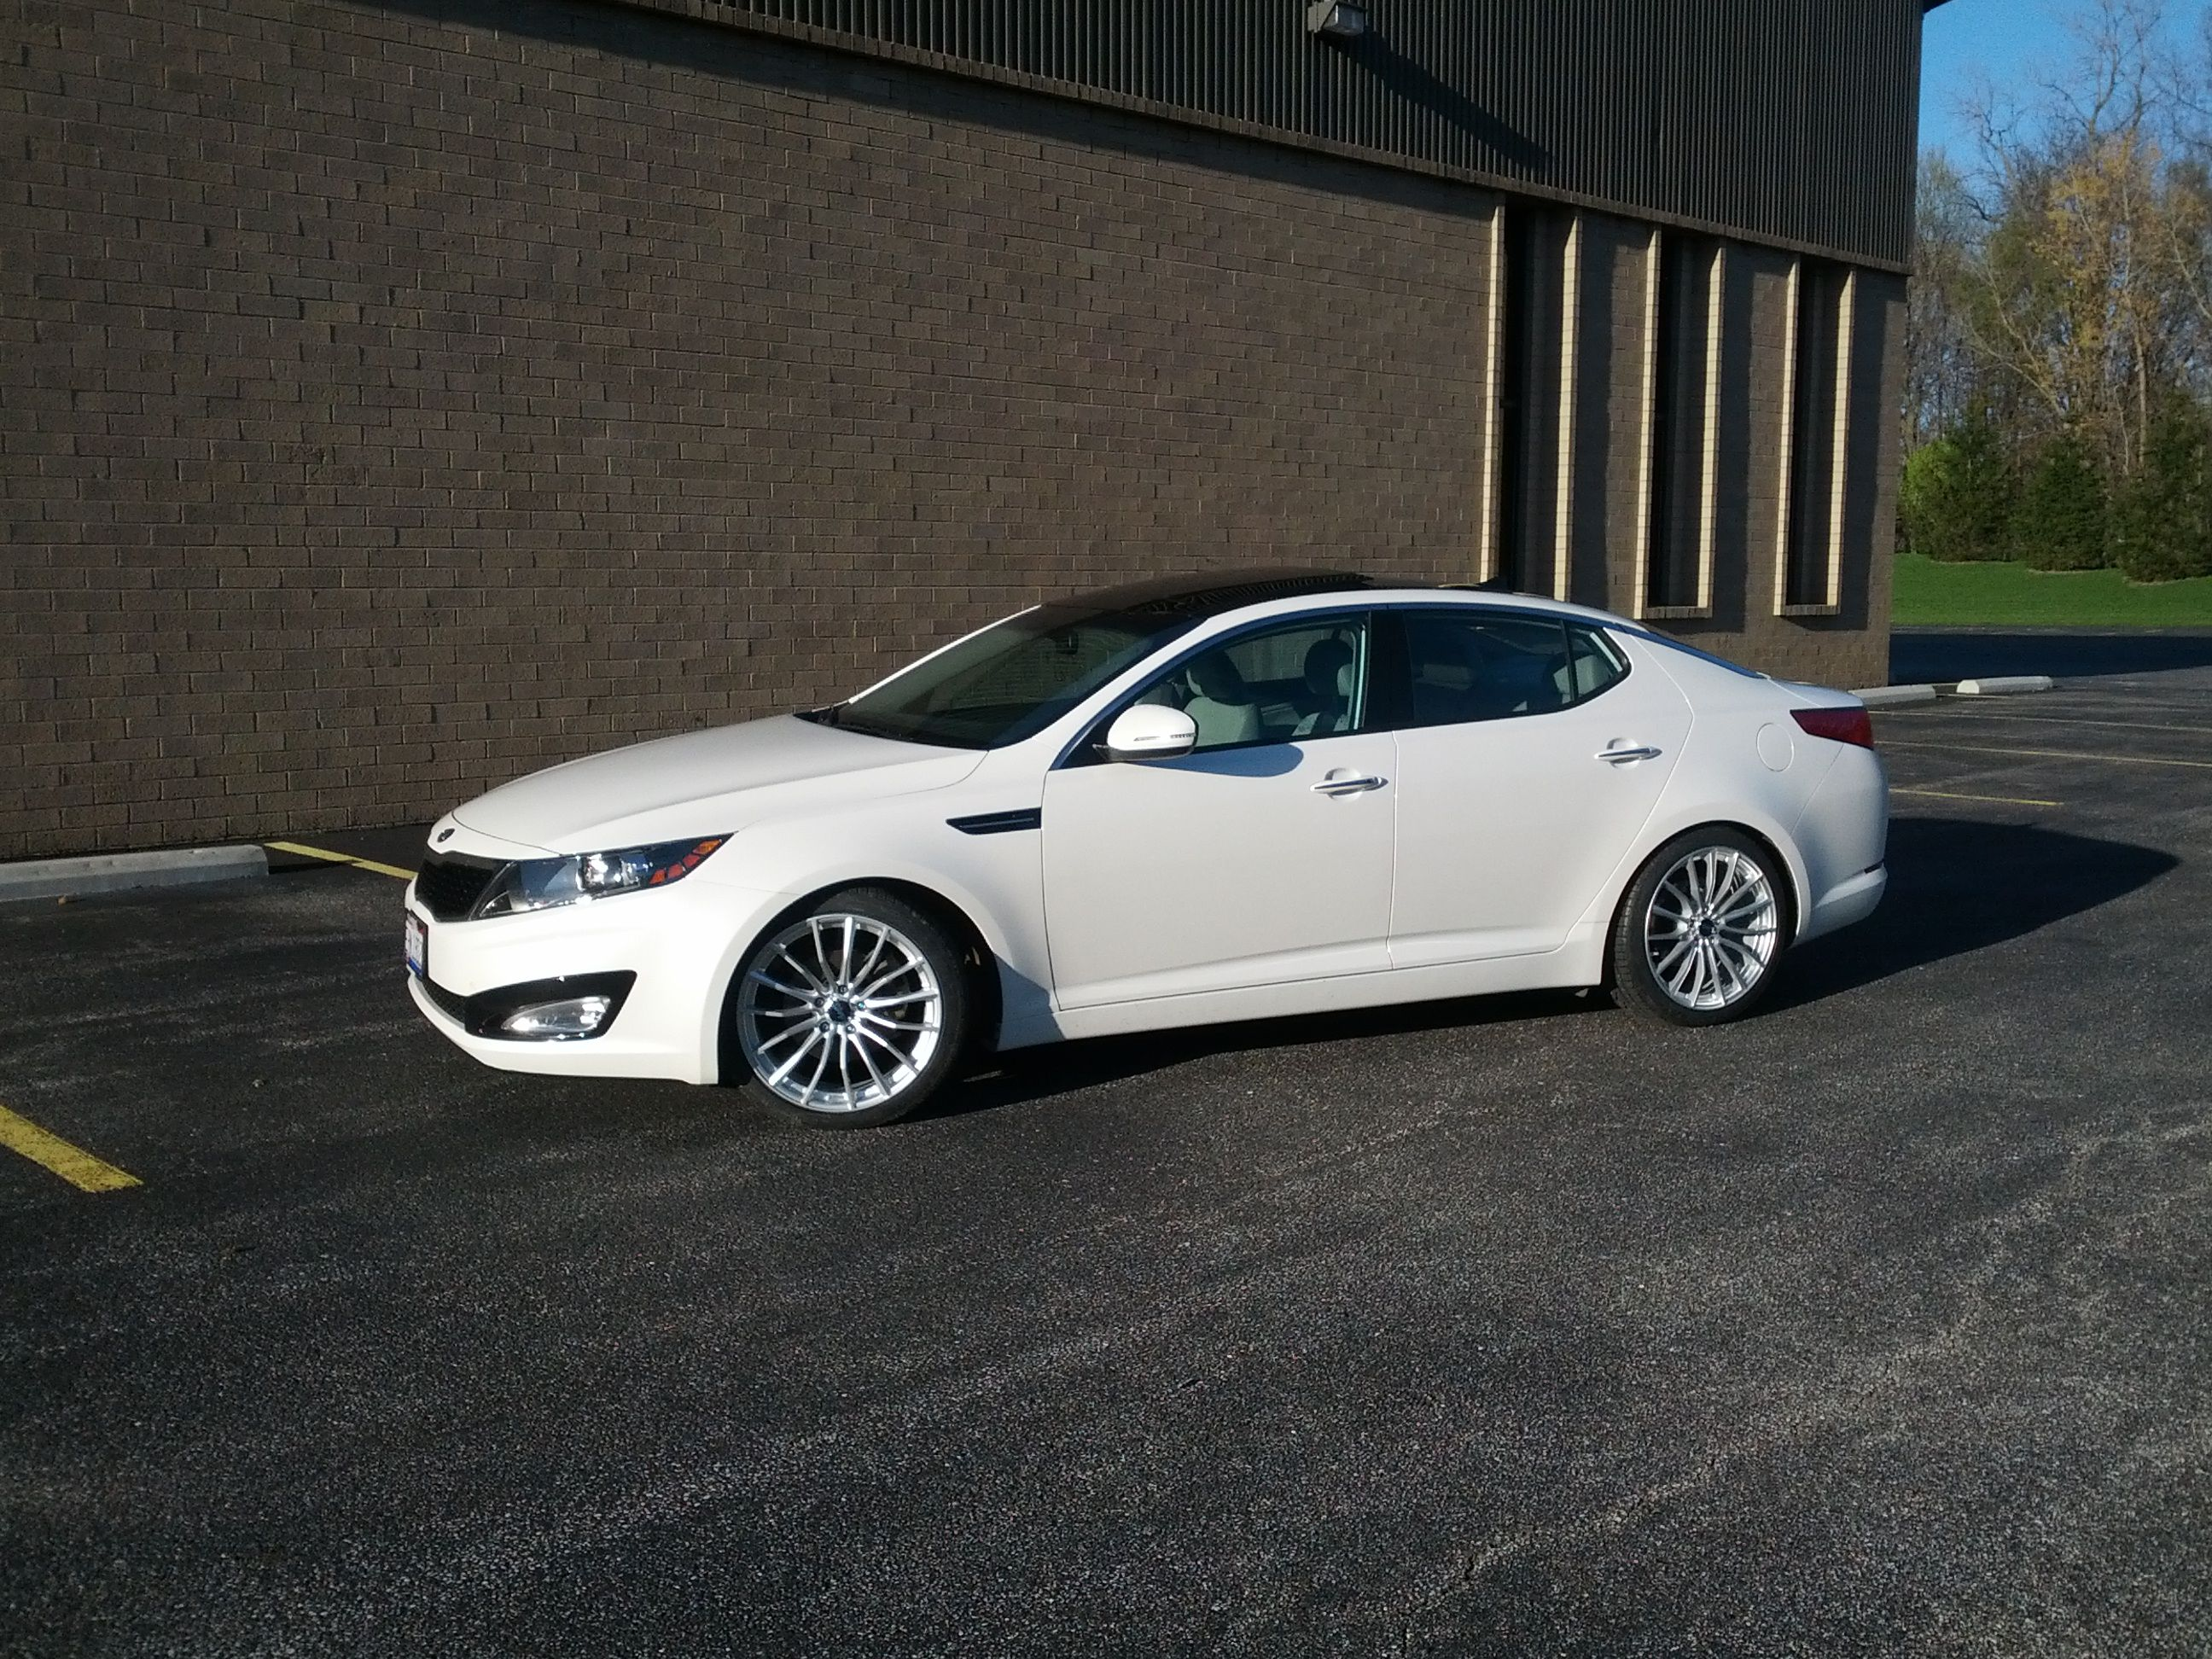 Kia Optima Kia Optima Pinterest Kia Optima Cars And Cool Cars